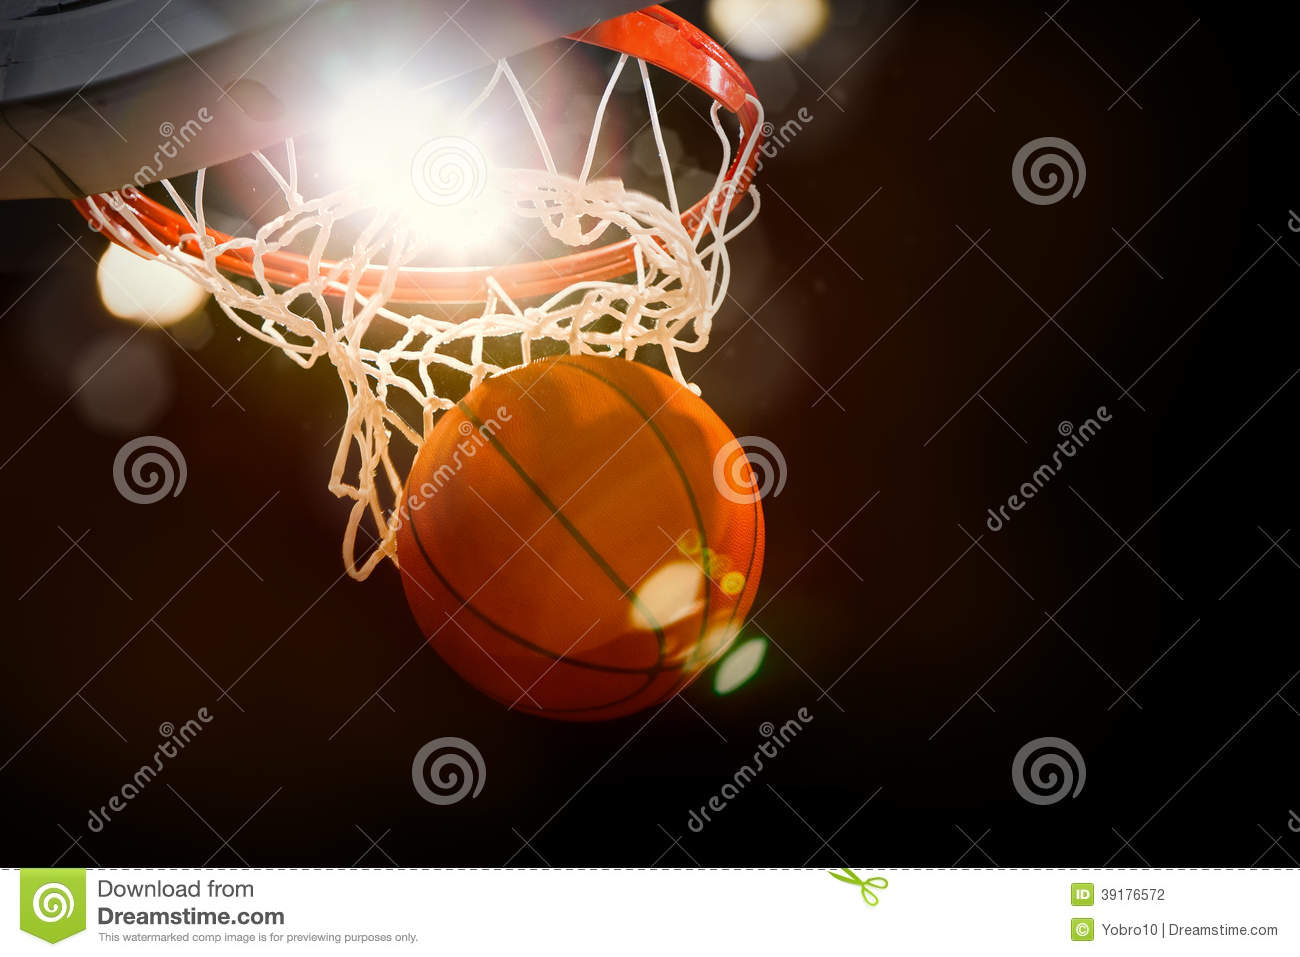 basketball stock photos royalty free stock images